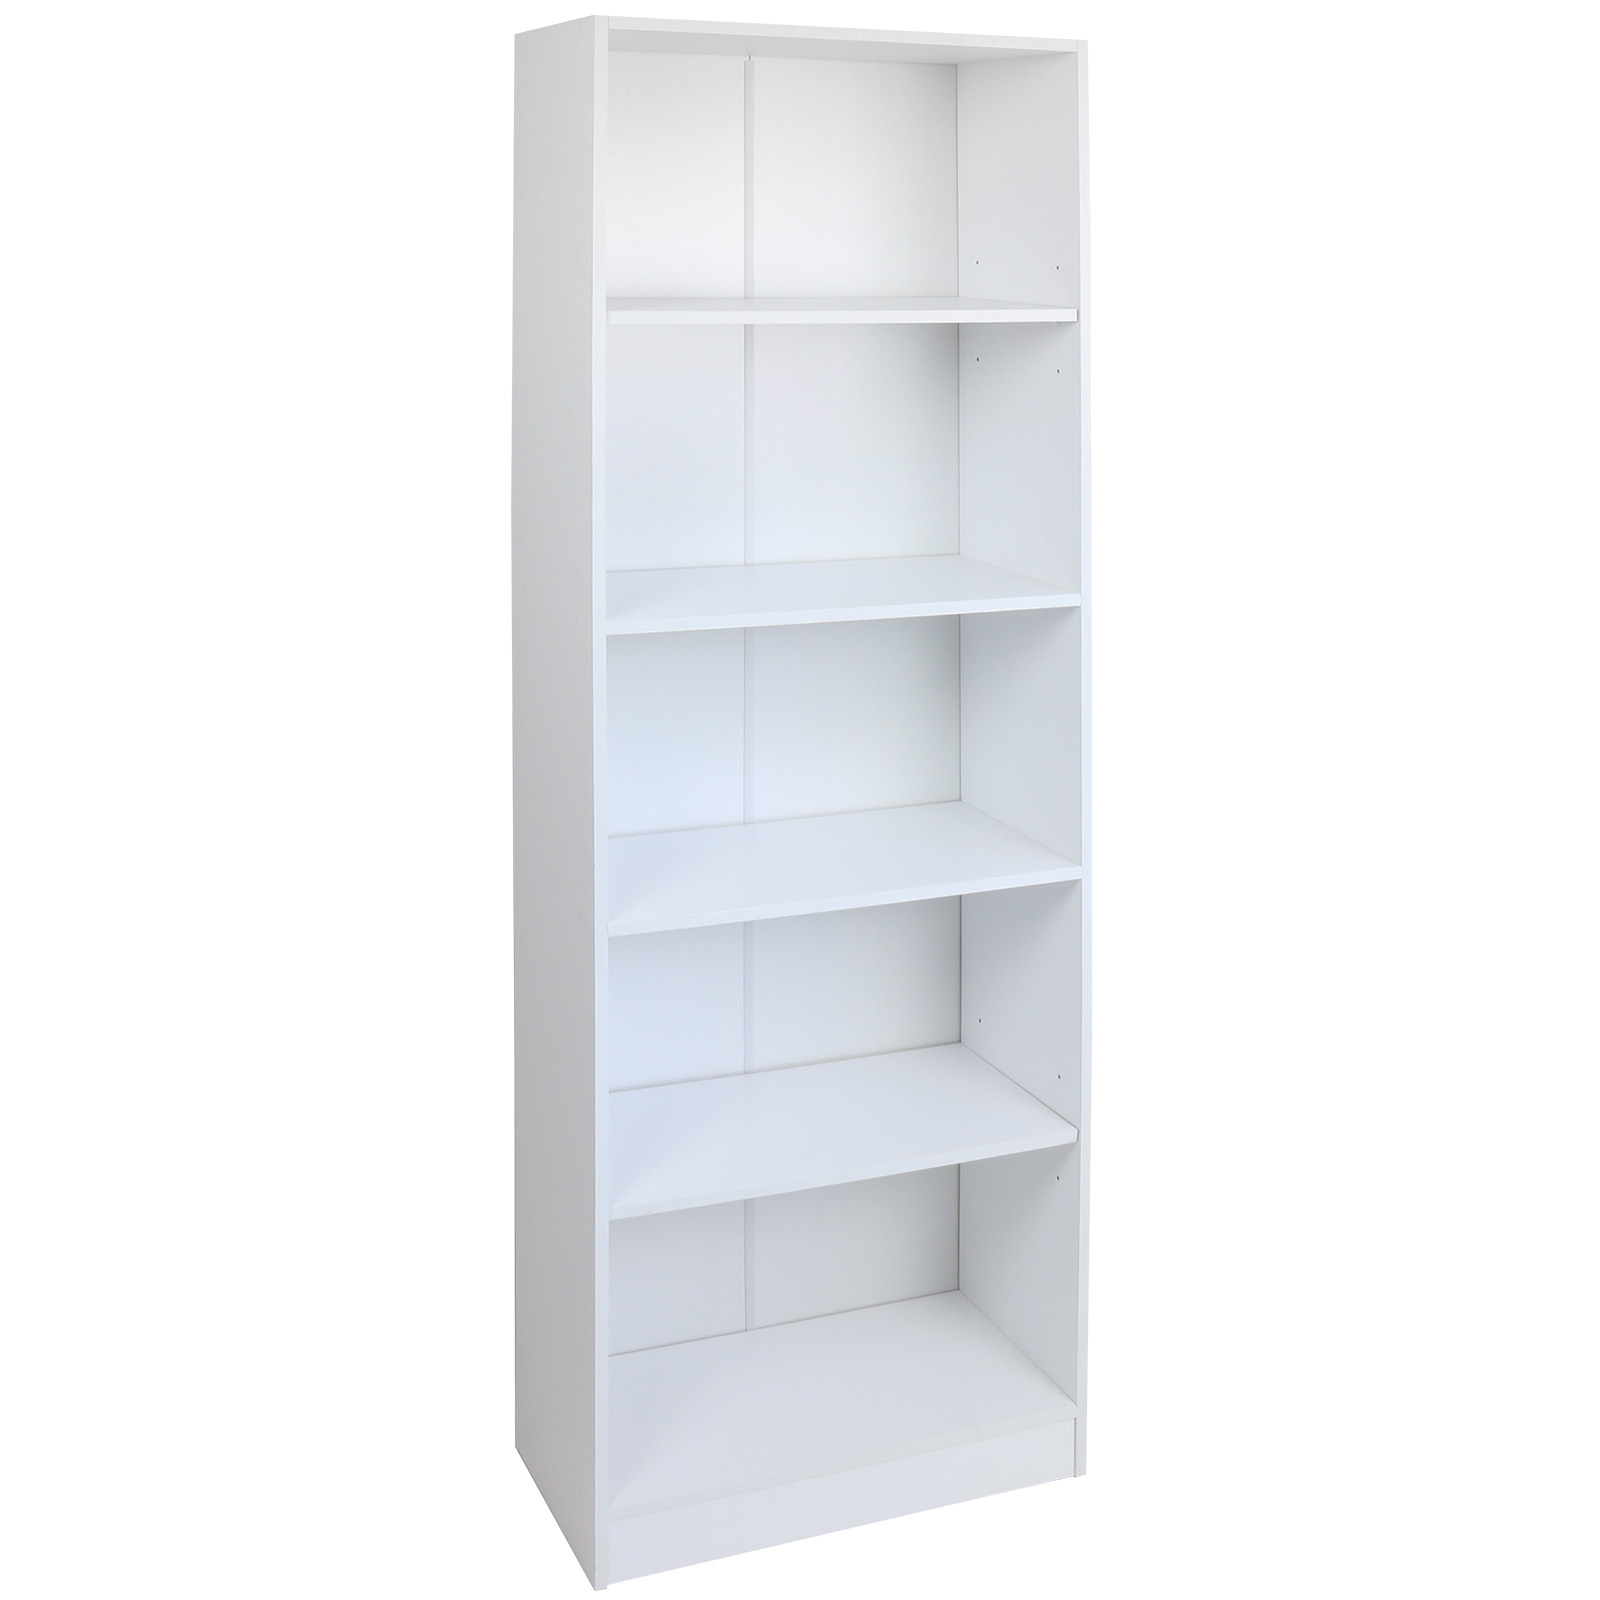 Wonderful image of  TIER WHITE WOODEN FREESTANDING BOOKCASE/BOOKS HELF STORAGE UNIT SHELF with #5A6271 color and 1600x1600 pixels